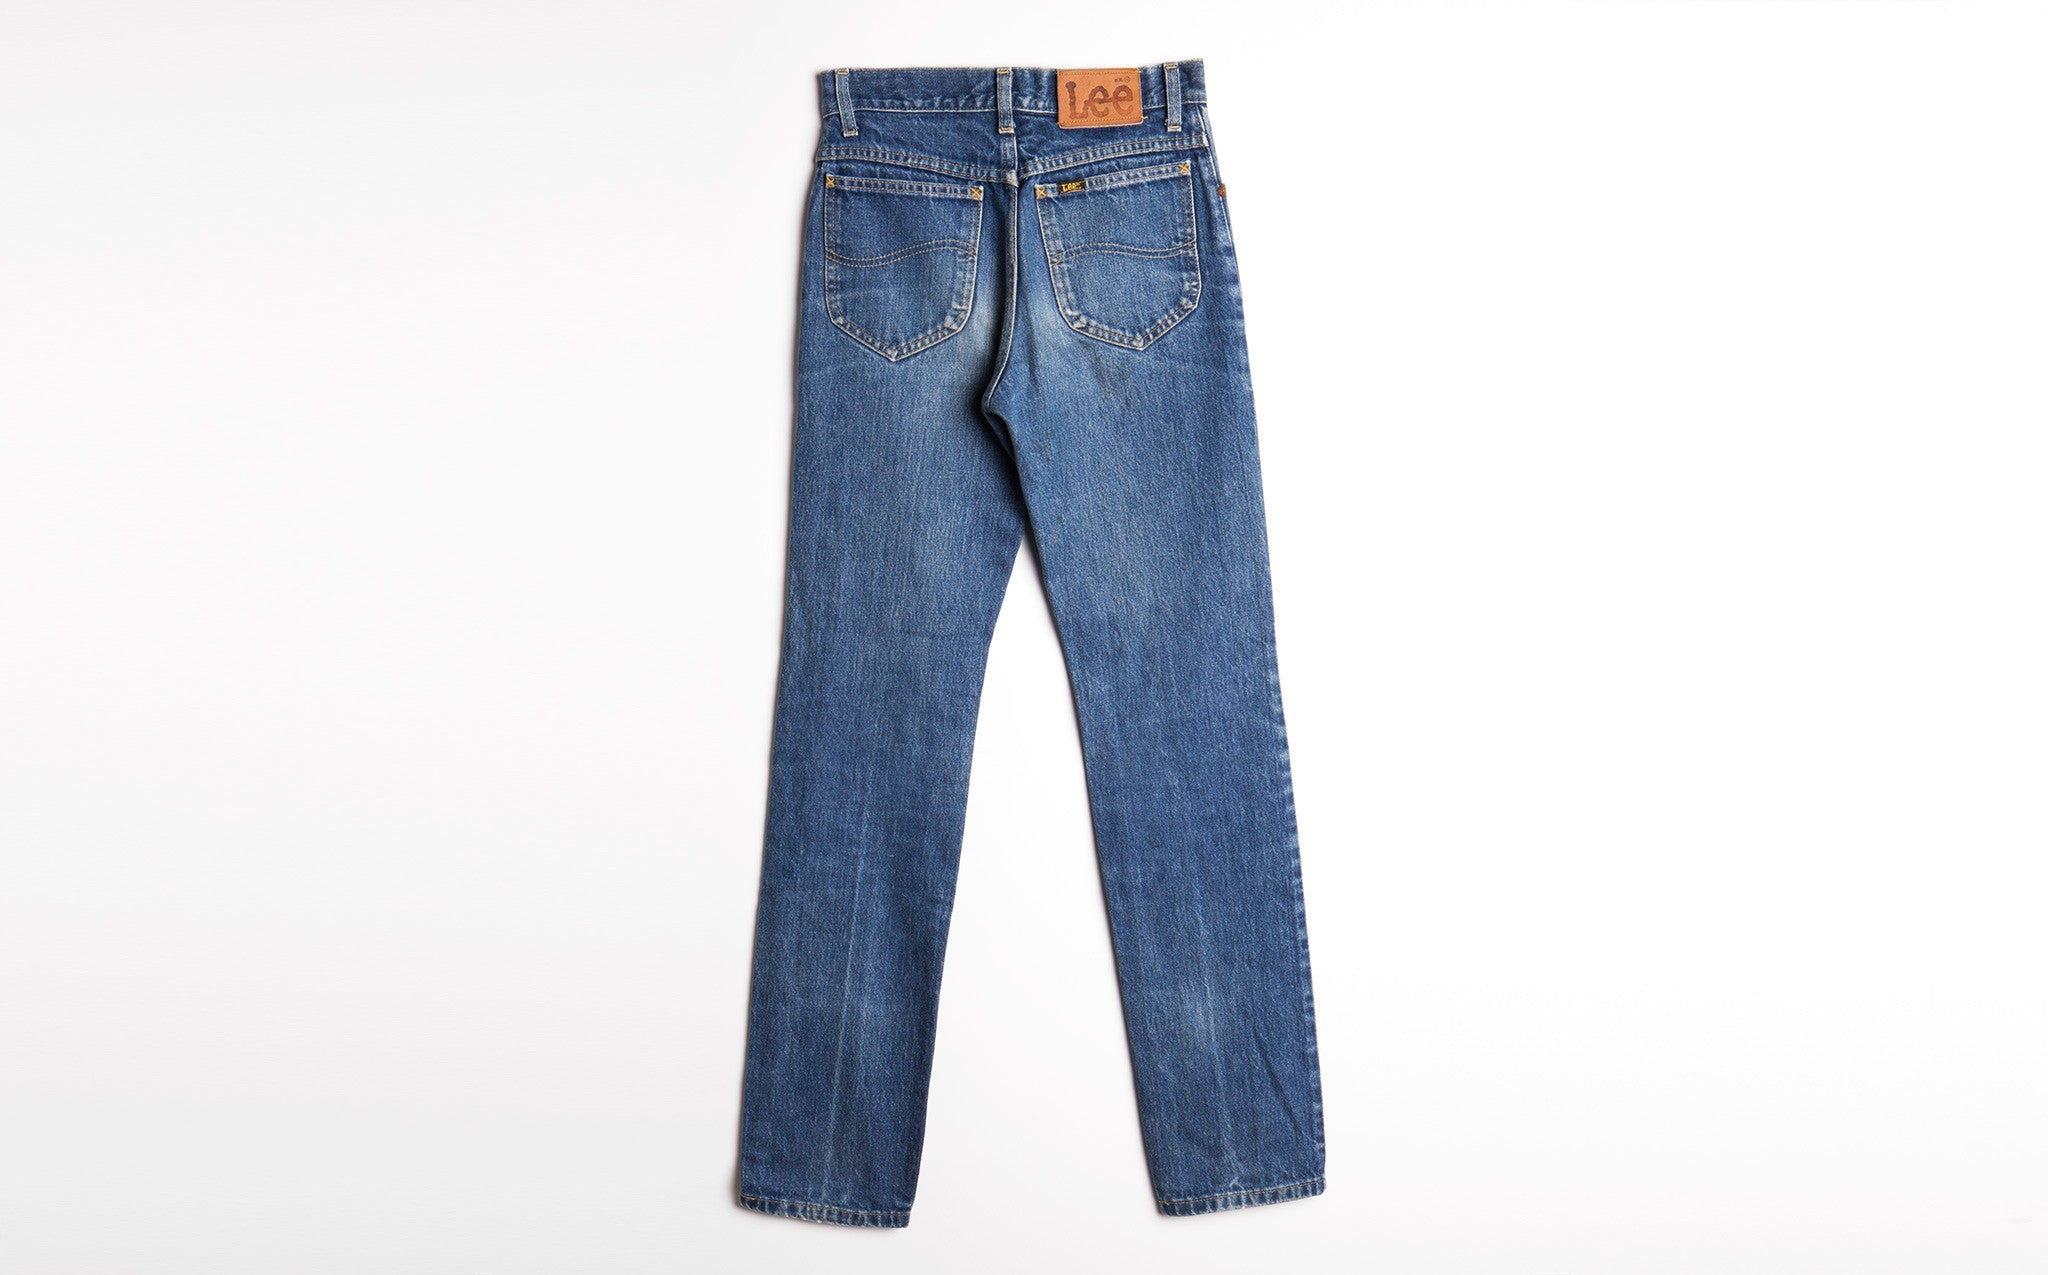 Fairseason Vintage Lee Denim